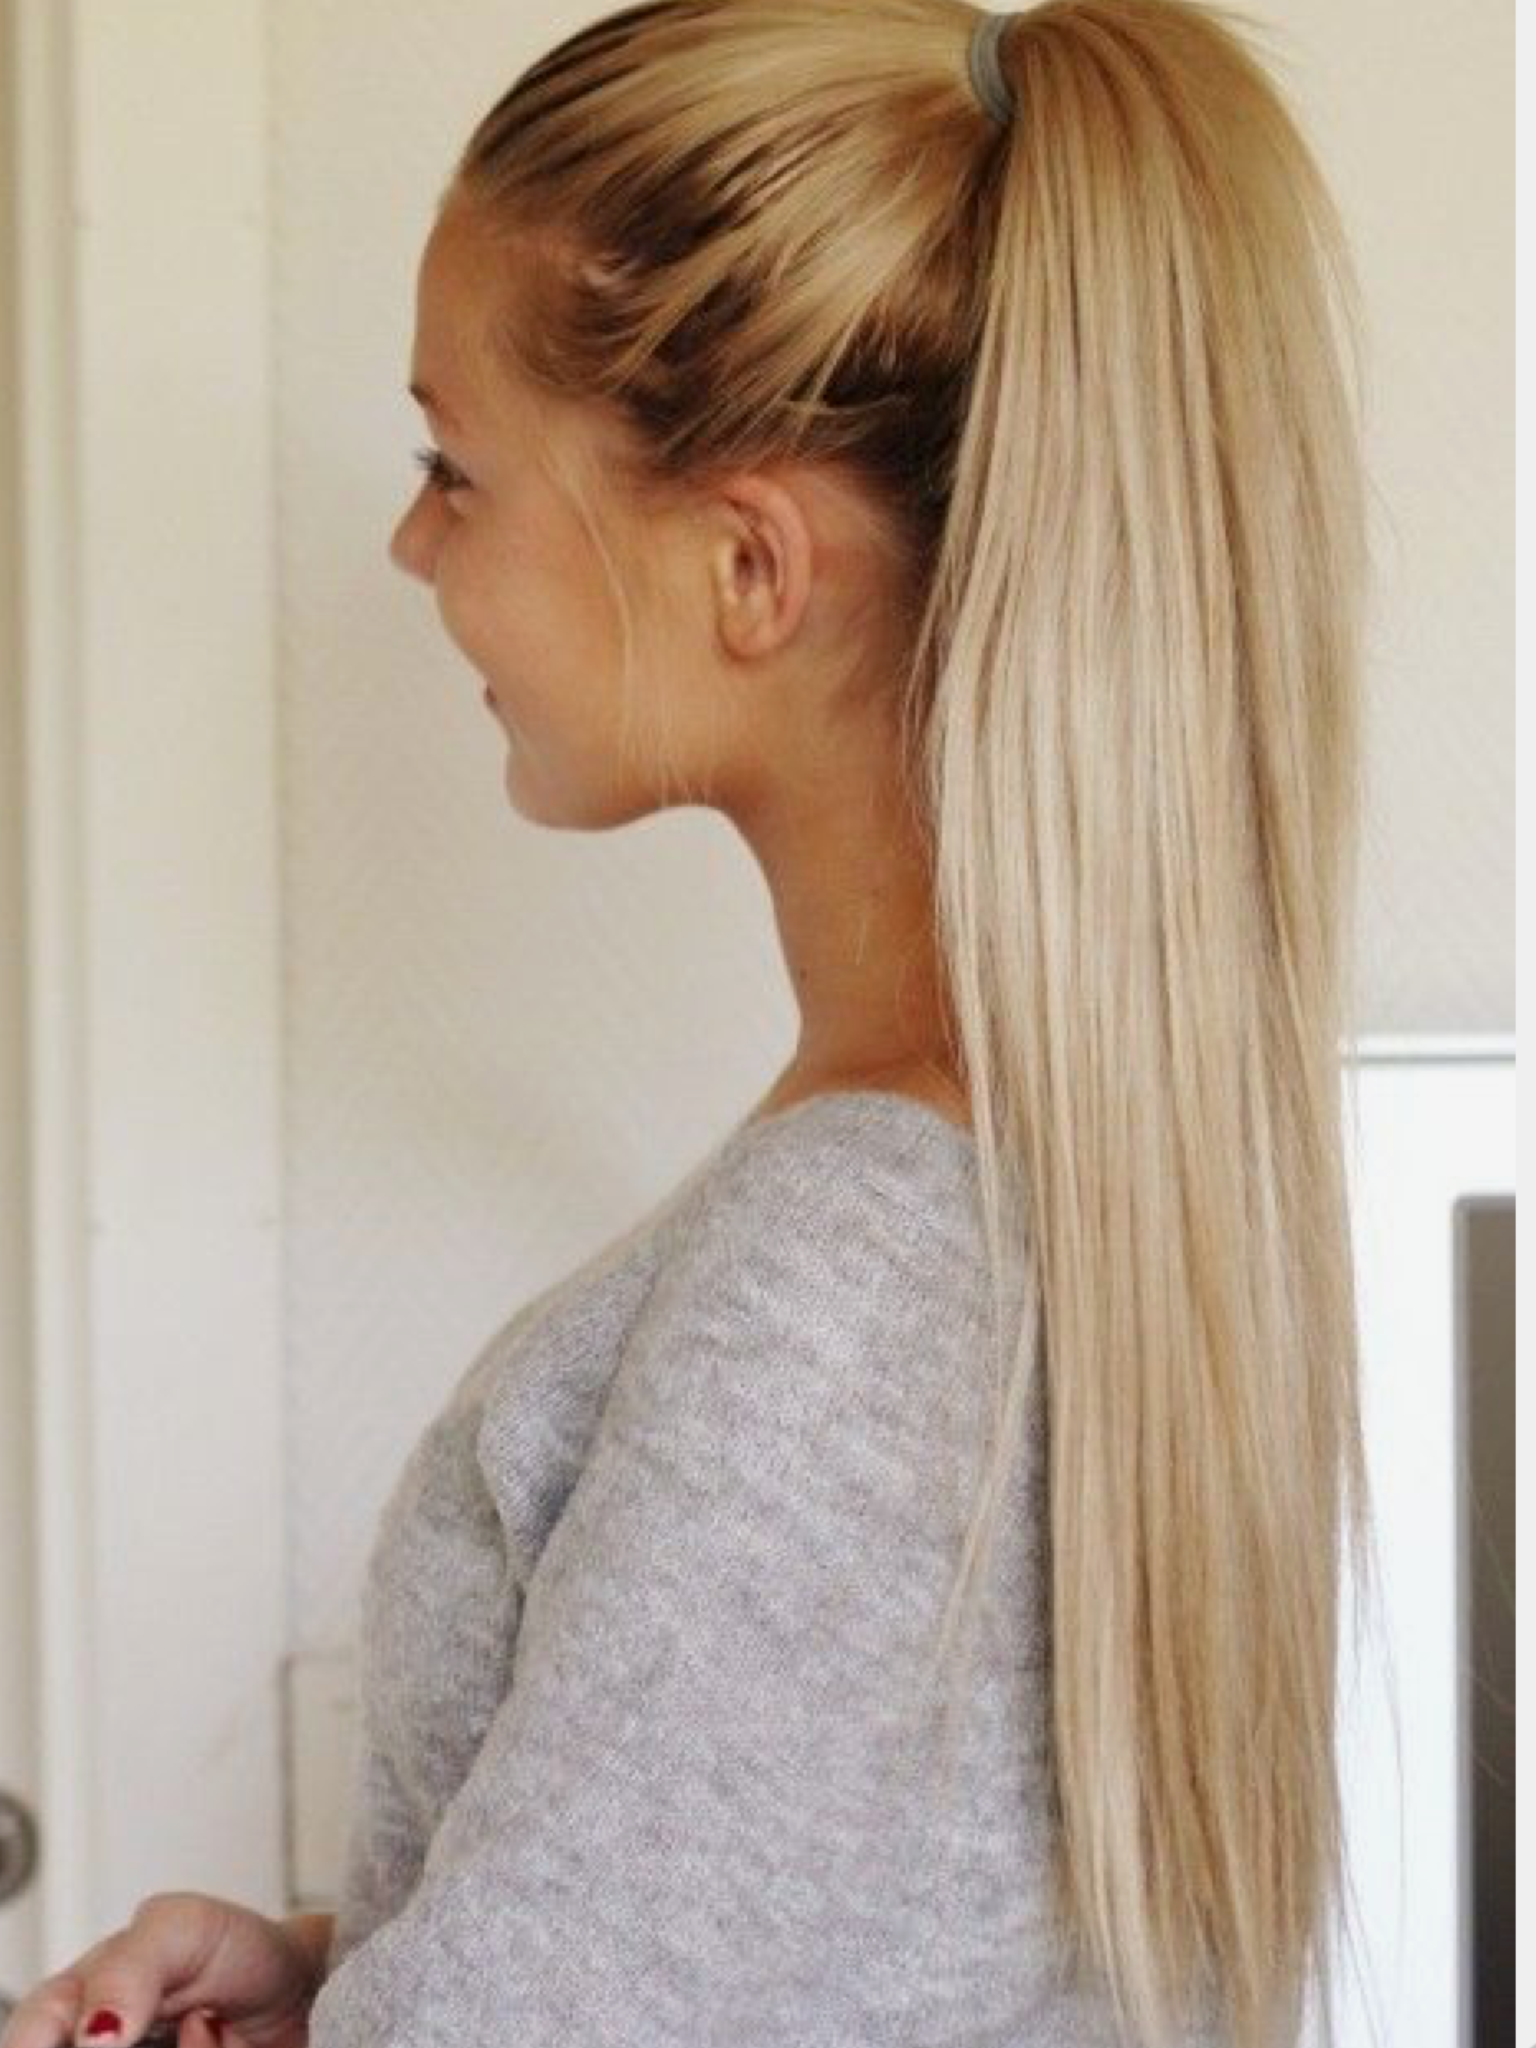 Top Models Guide in 2020 | Long ponytail hairstyles, High